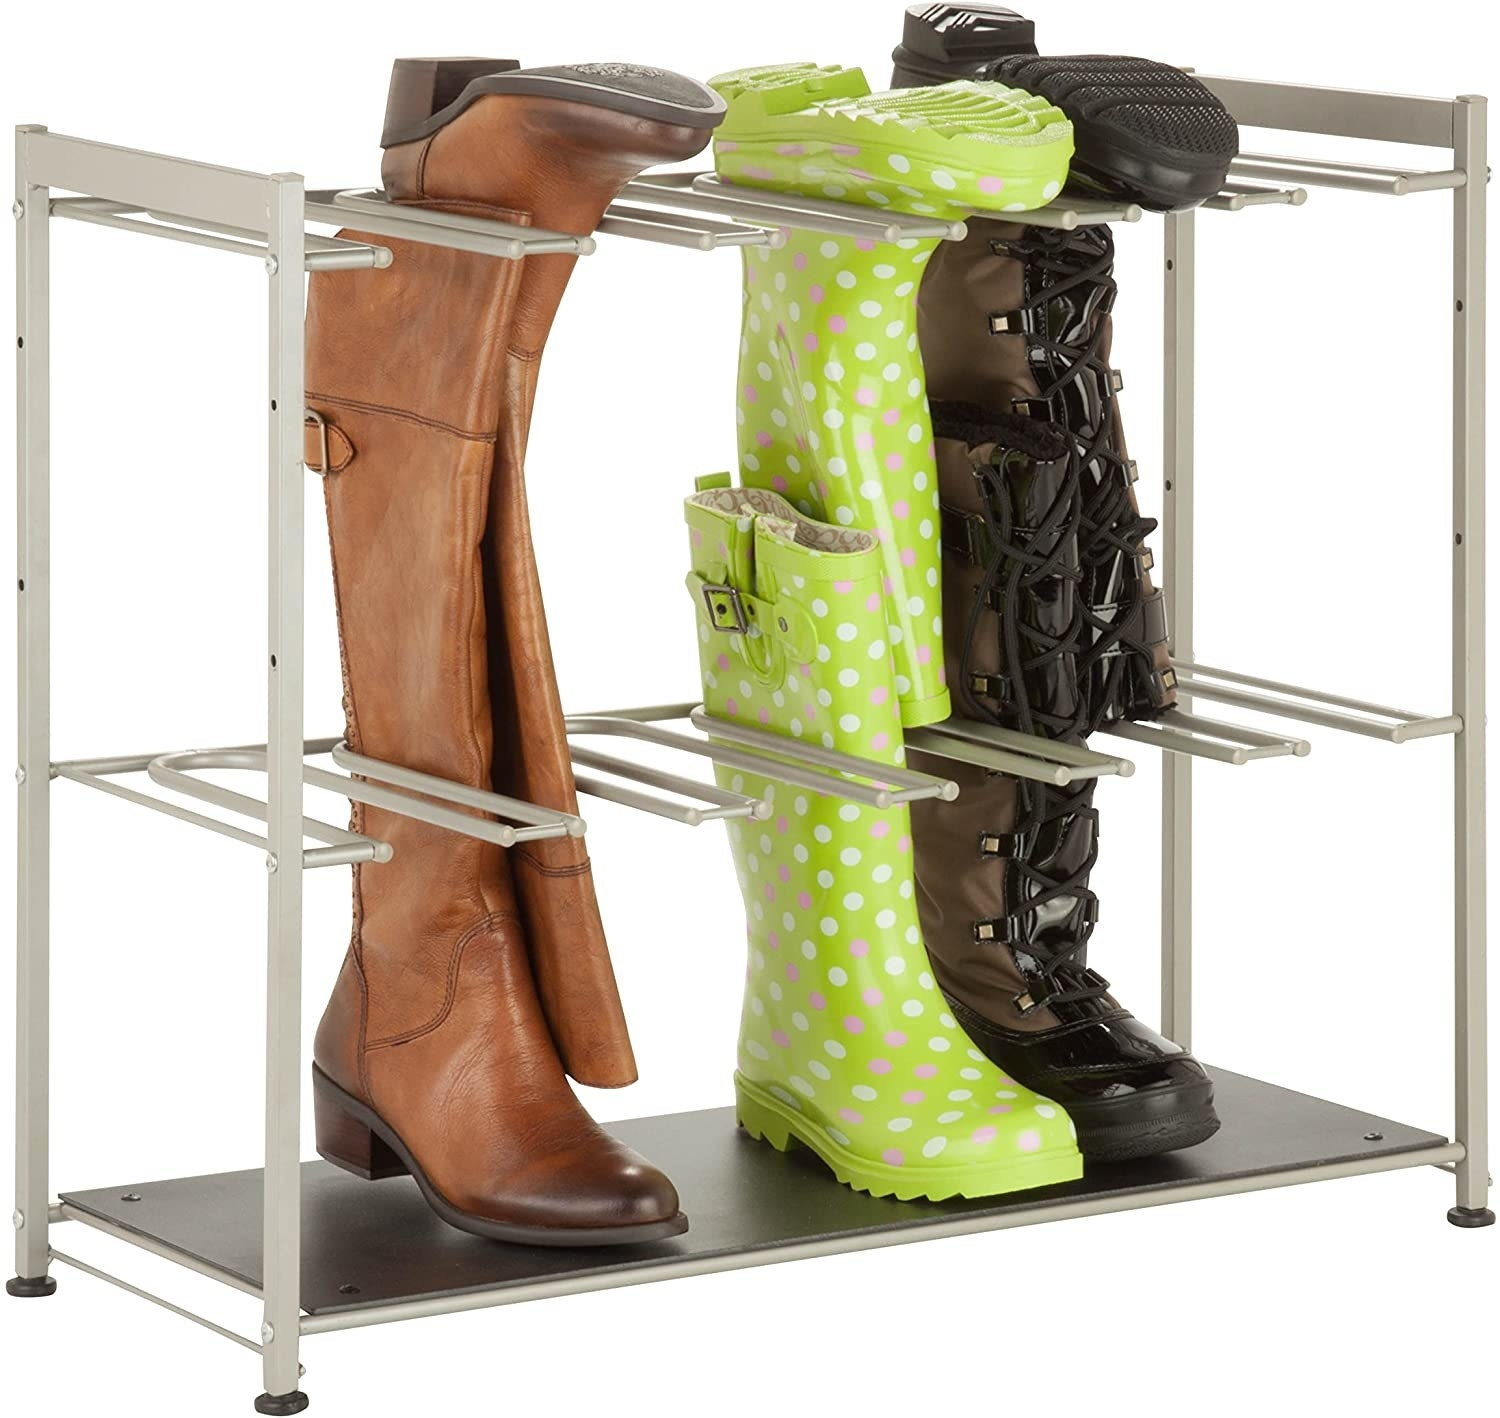 A shoe rack filled with tall boots